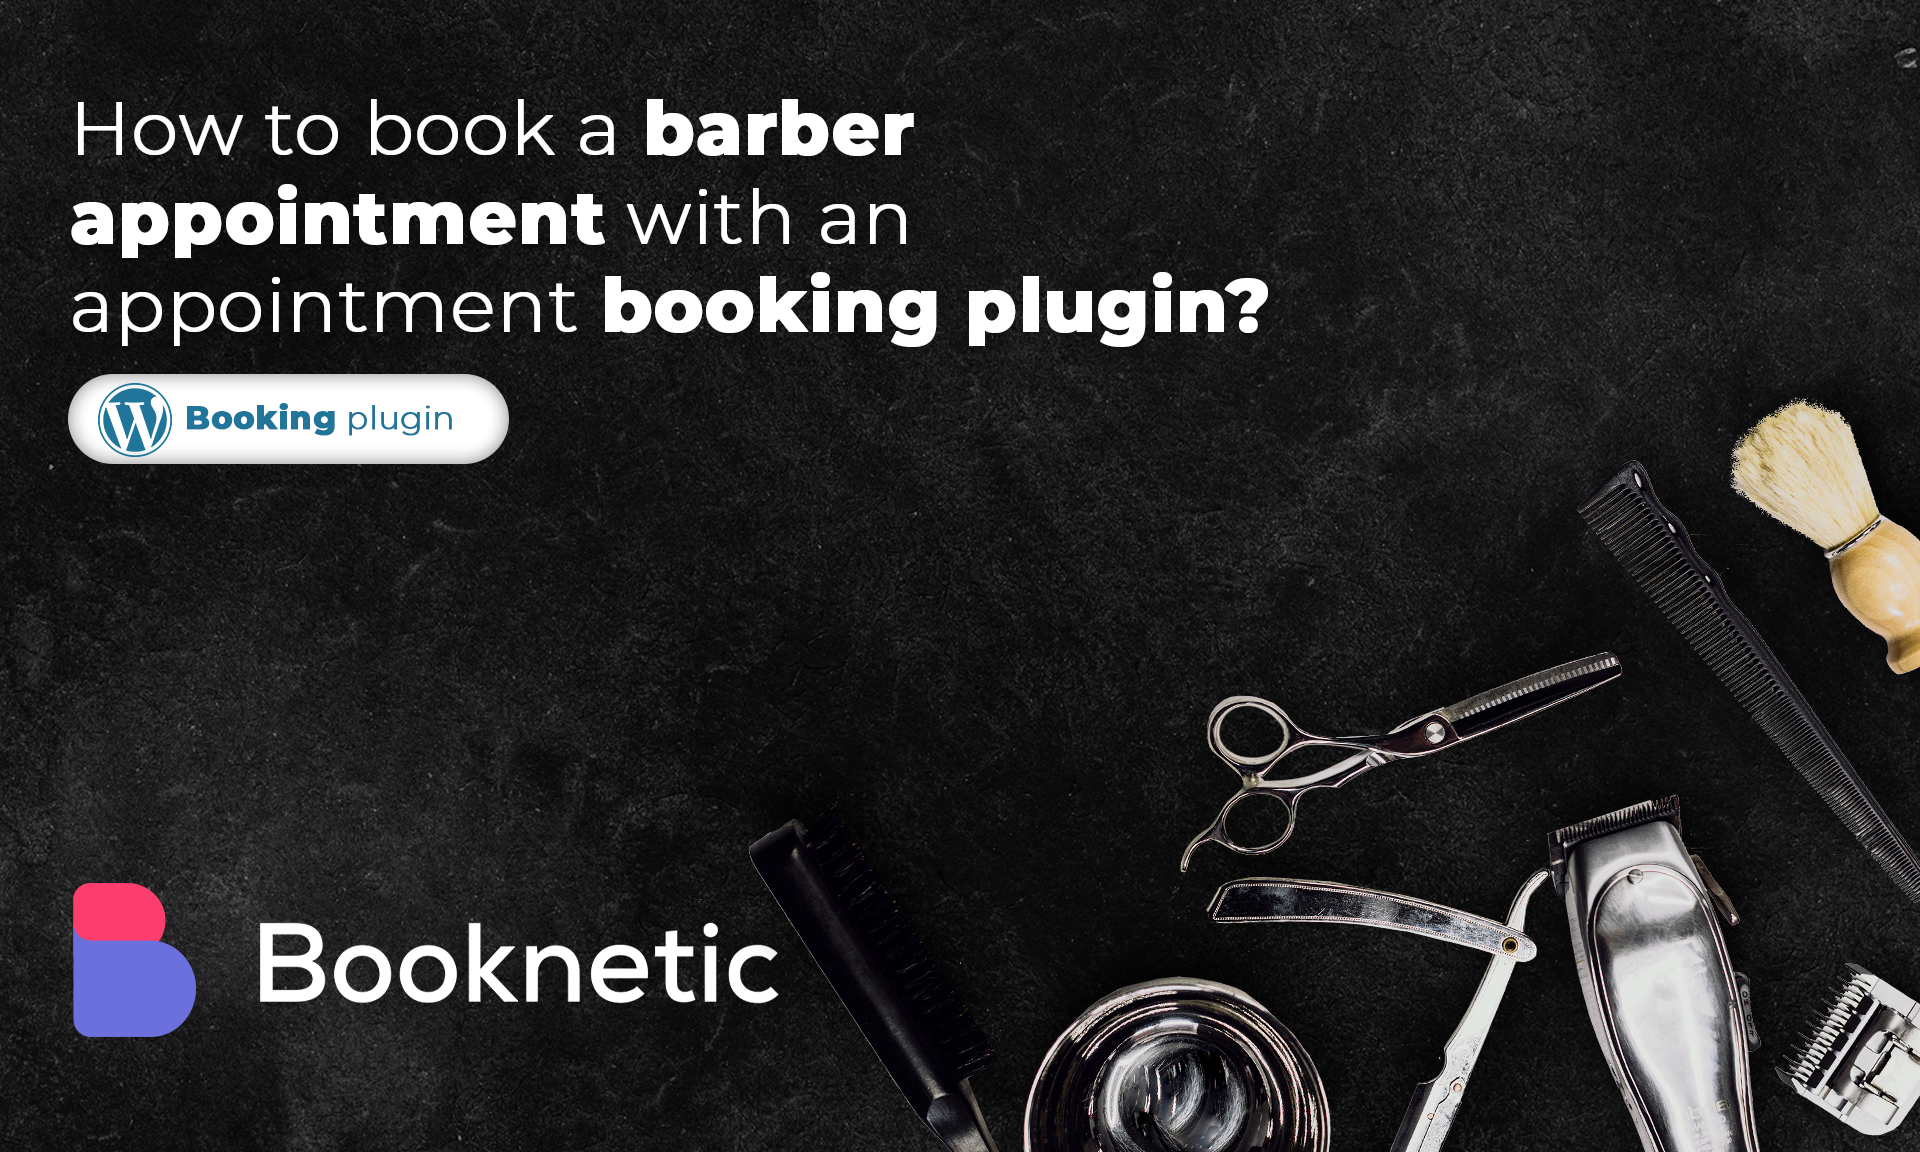 How to book a barber appointment with an appointment booking plugin?